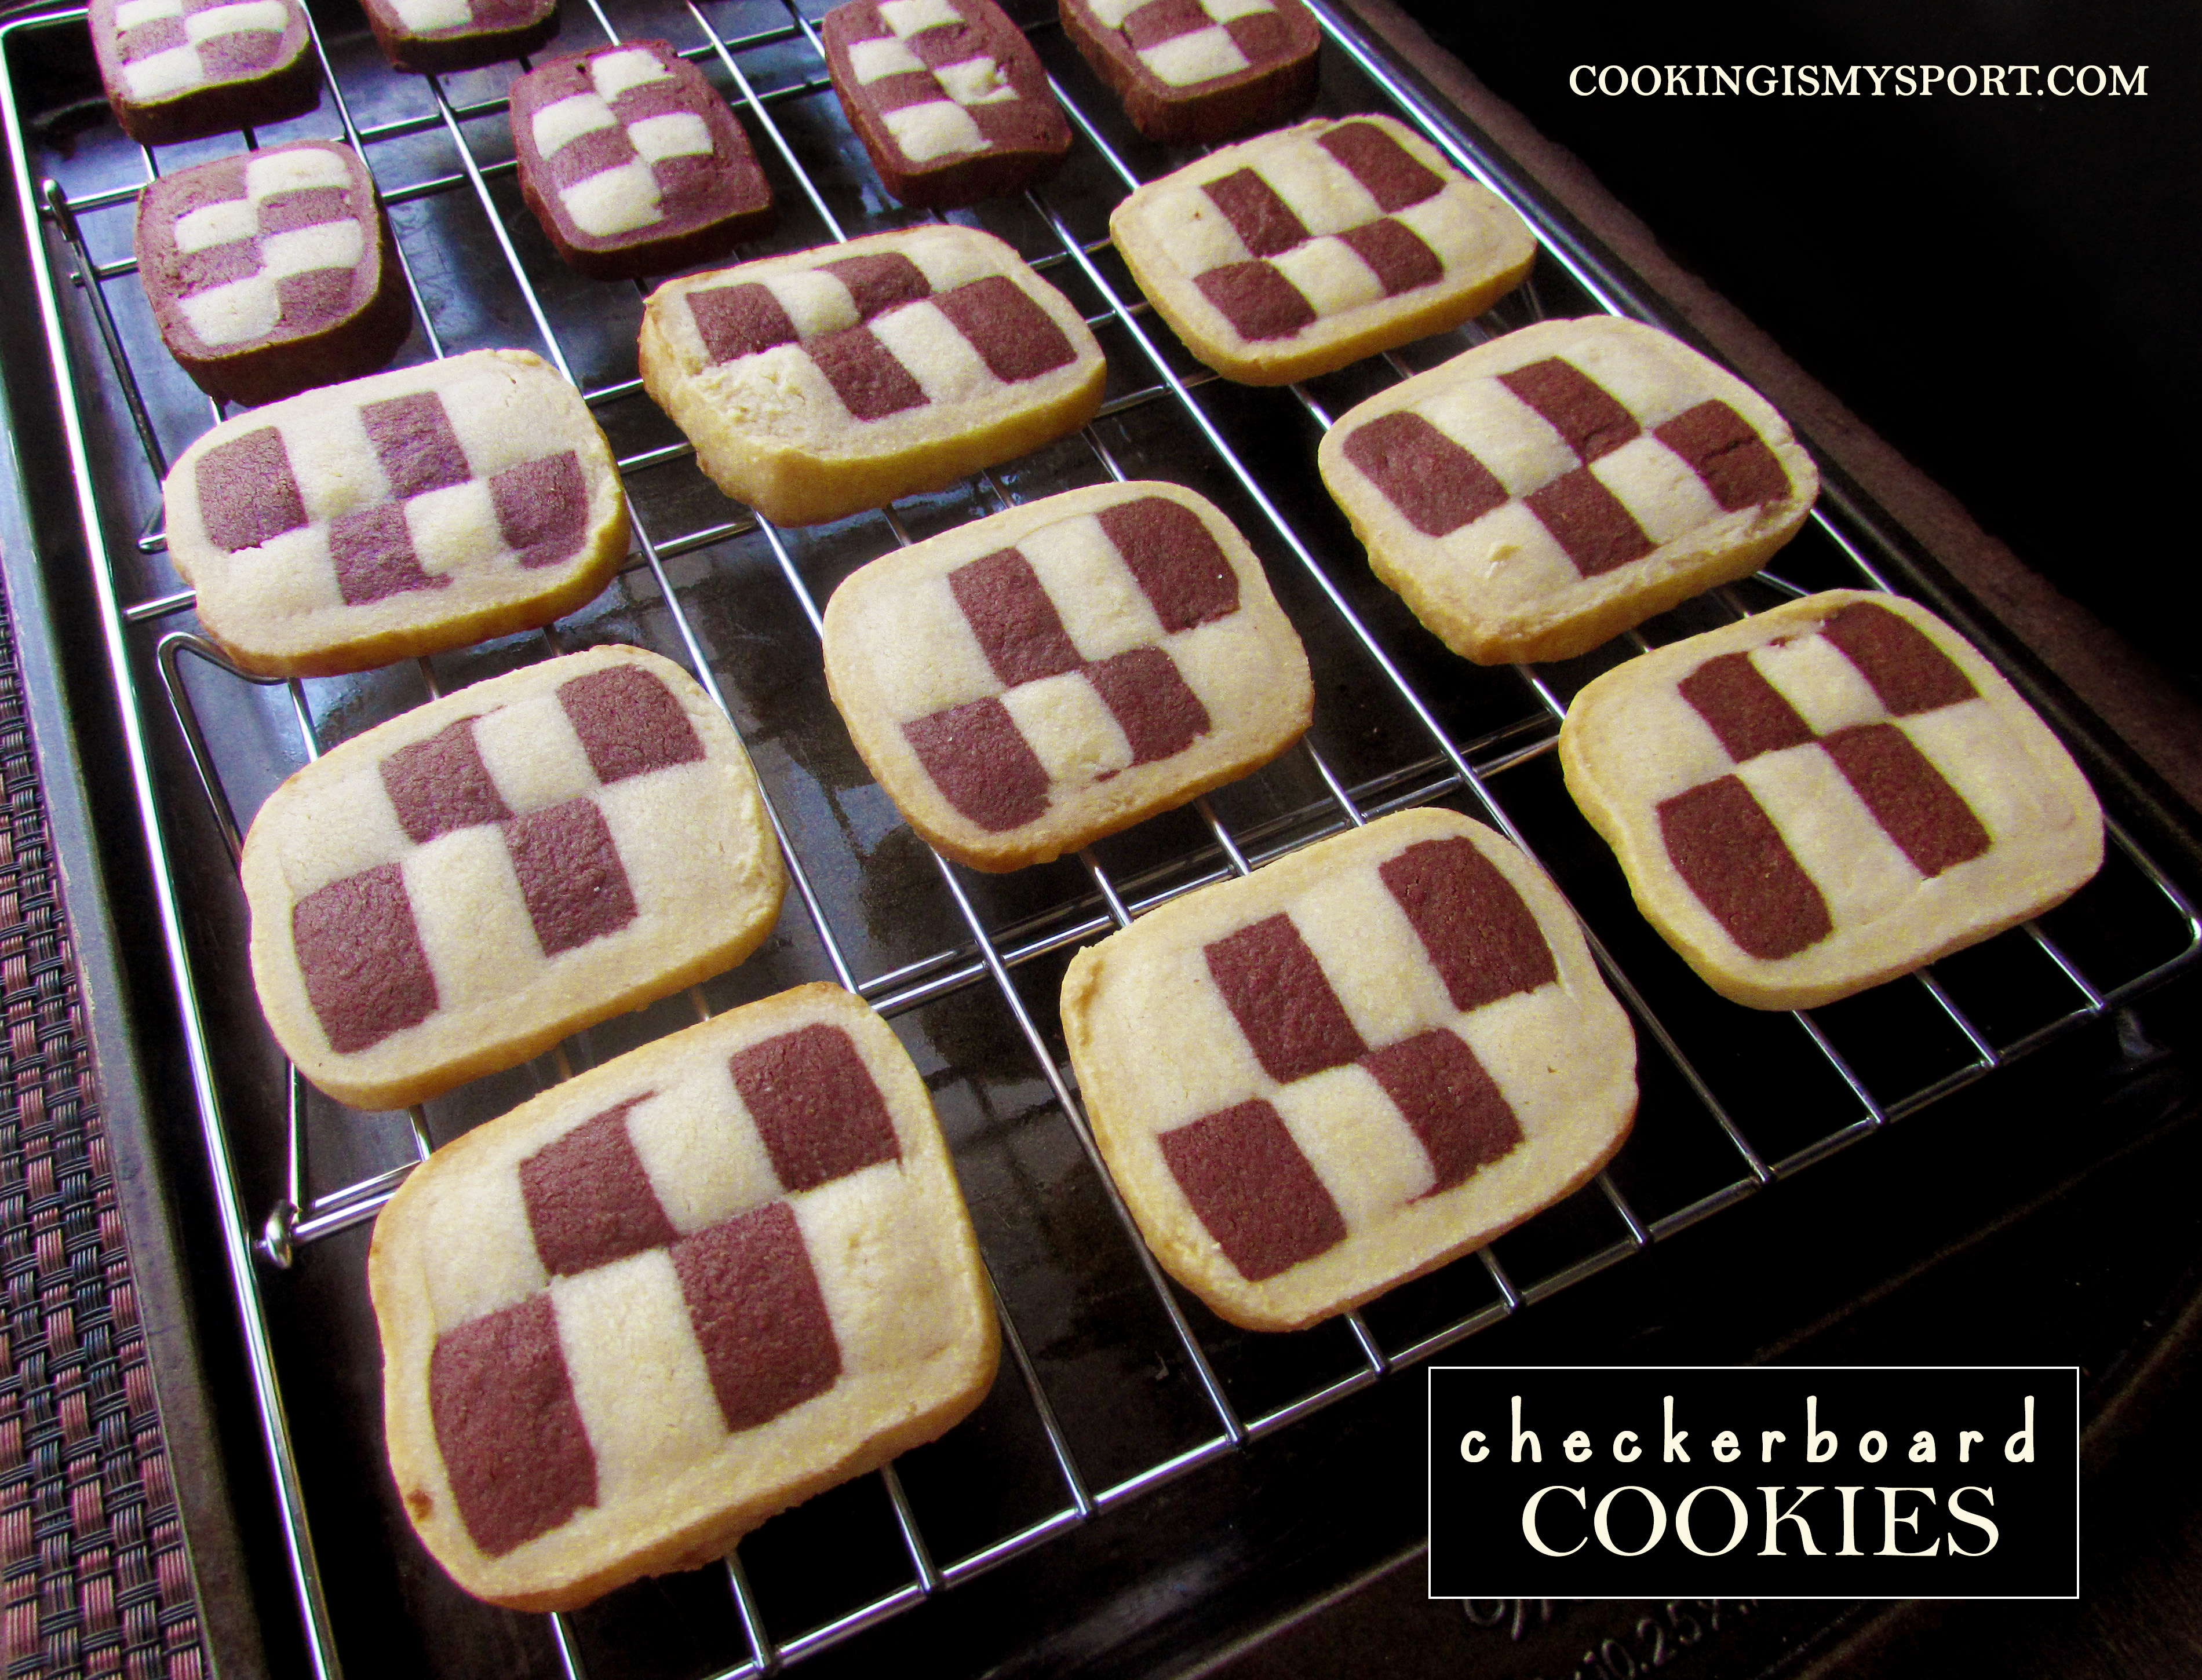 Crunchy And Adorable Checkerboard Cookies Recipe